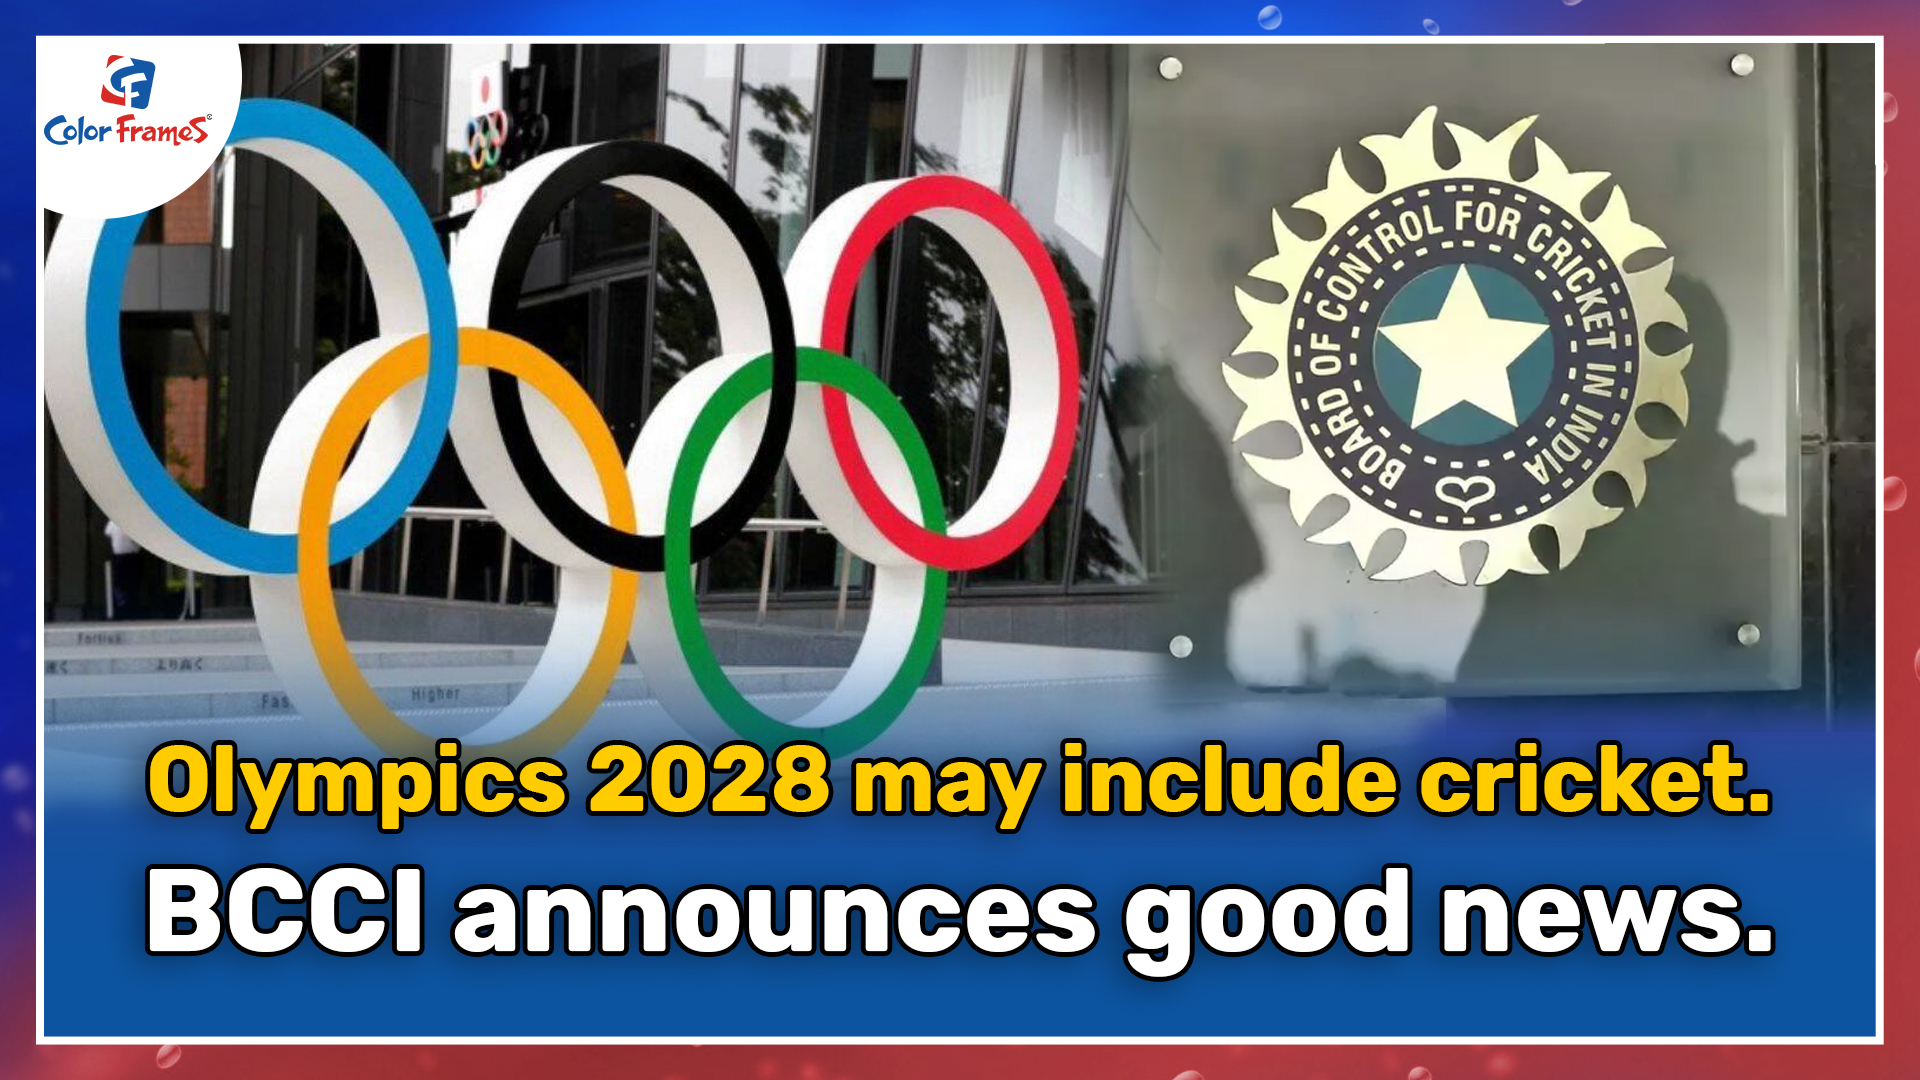 Olympics 2028 may include cricket. BCCI announces good news.